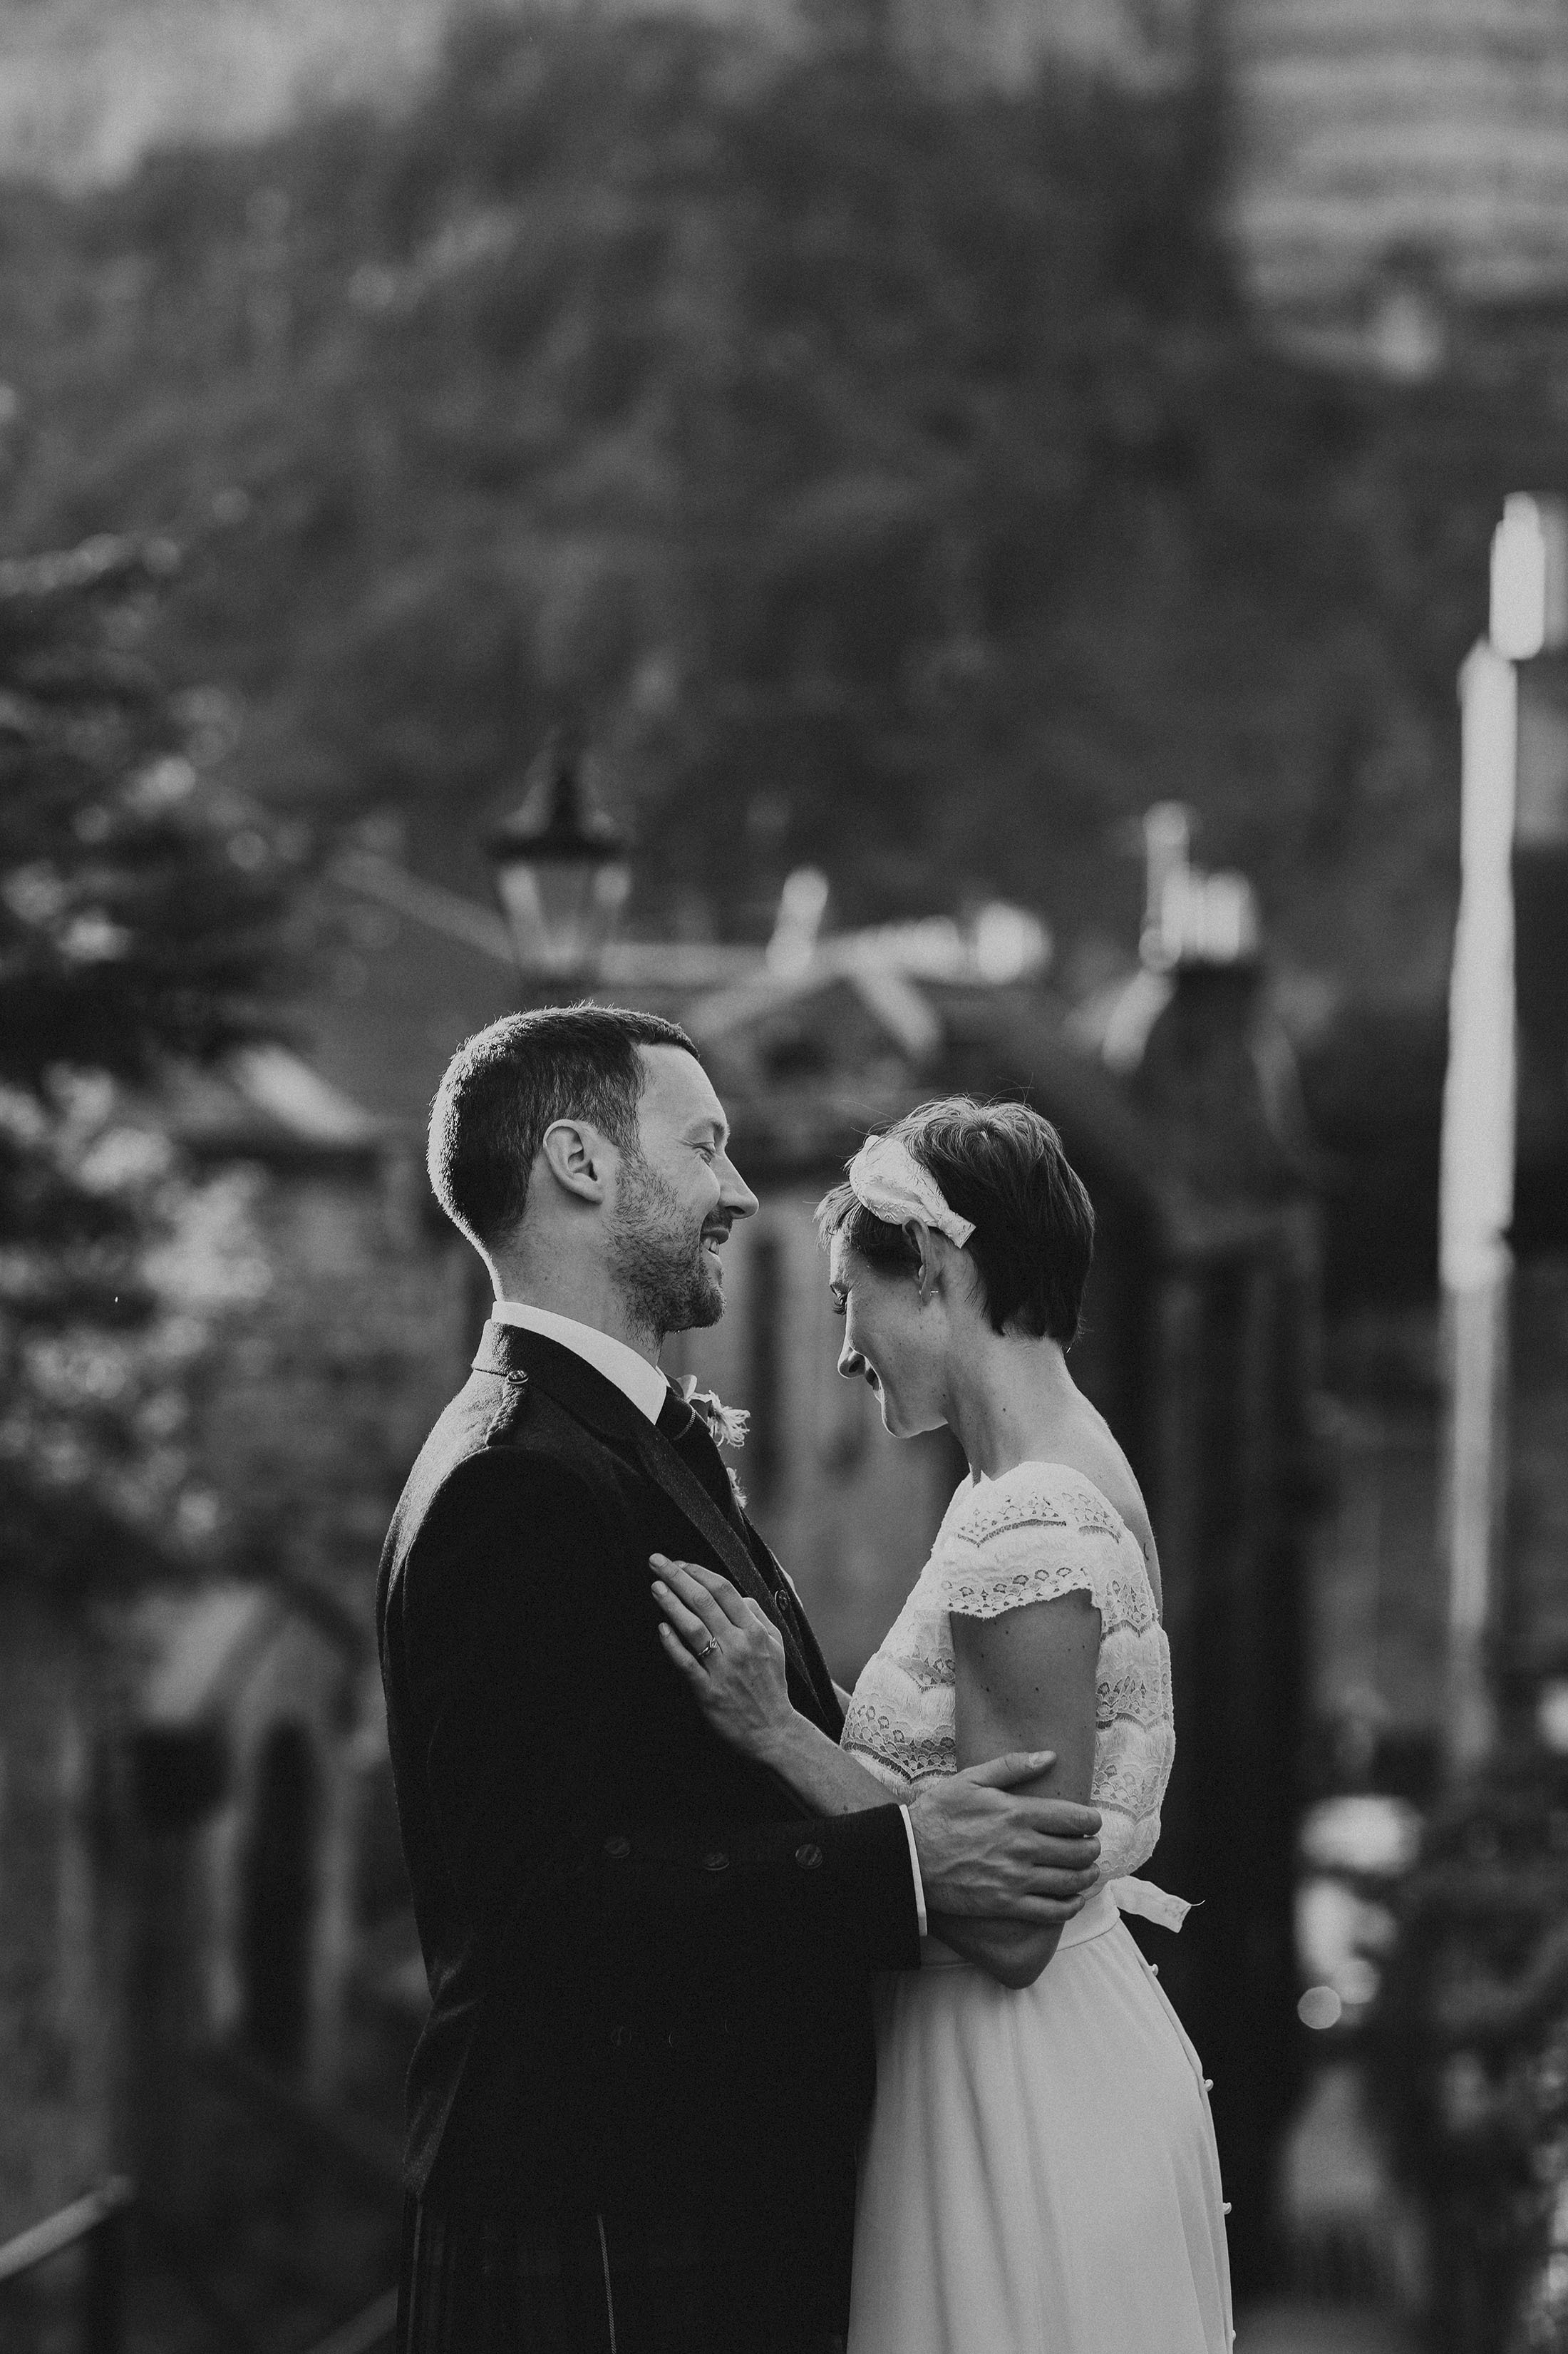 TIMBERYARD_EDINBURGH_WEDDING_PJ_PHILLIPS_PHOTOGRAPHY_186.jpg